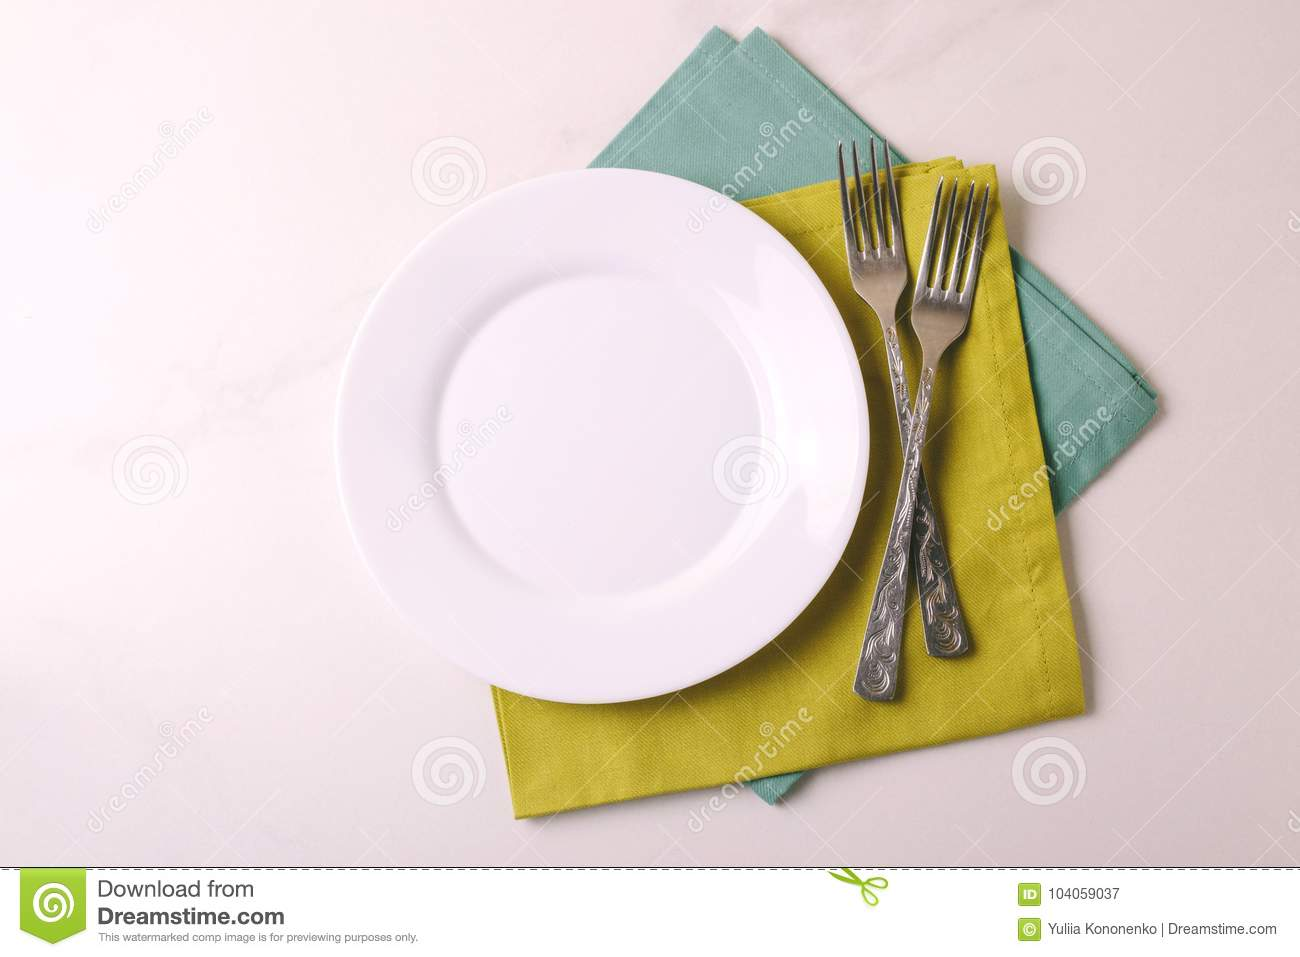 Plate With Food Top View Food Background White Empty Plate Cutlery Napkin Top